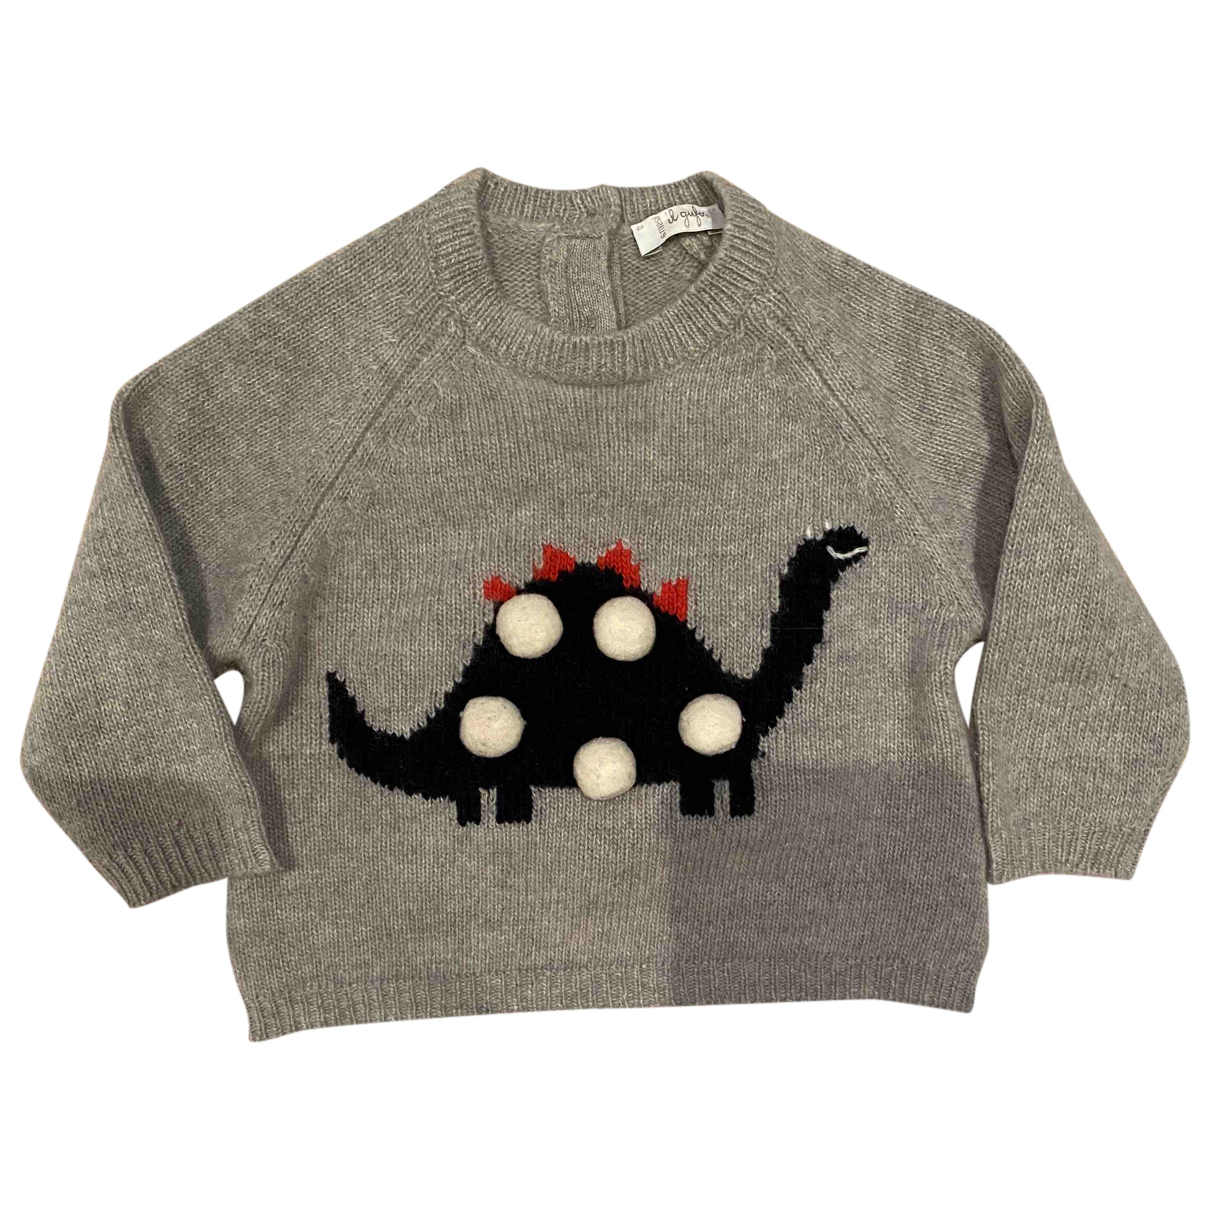 Il Gufo N Grey Wool Knitwear for Kids 6 months - up to 67cm FR